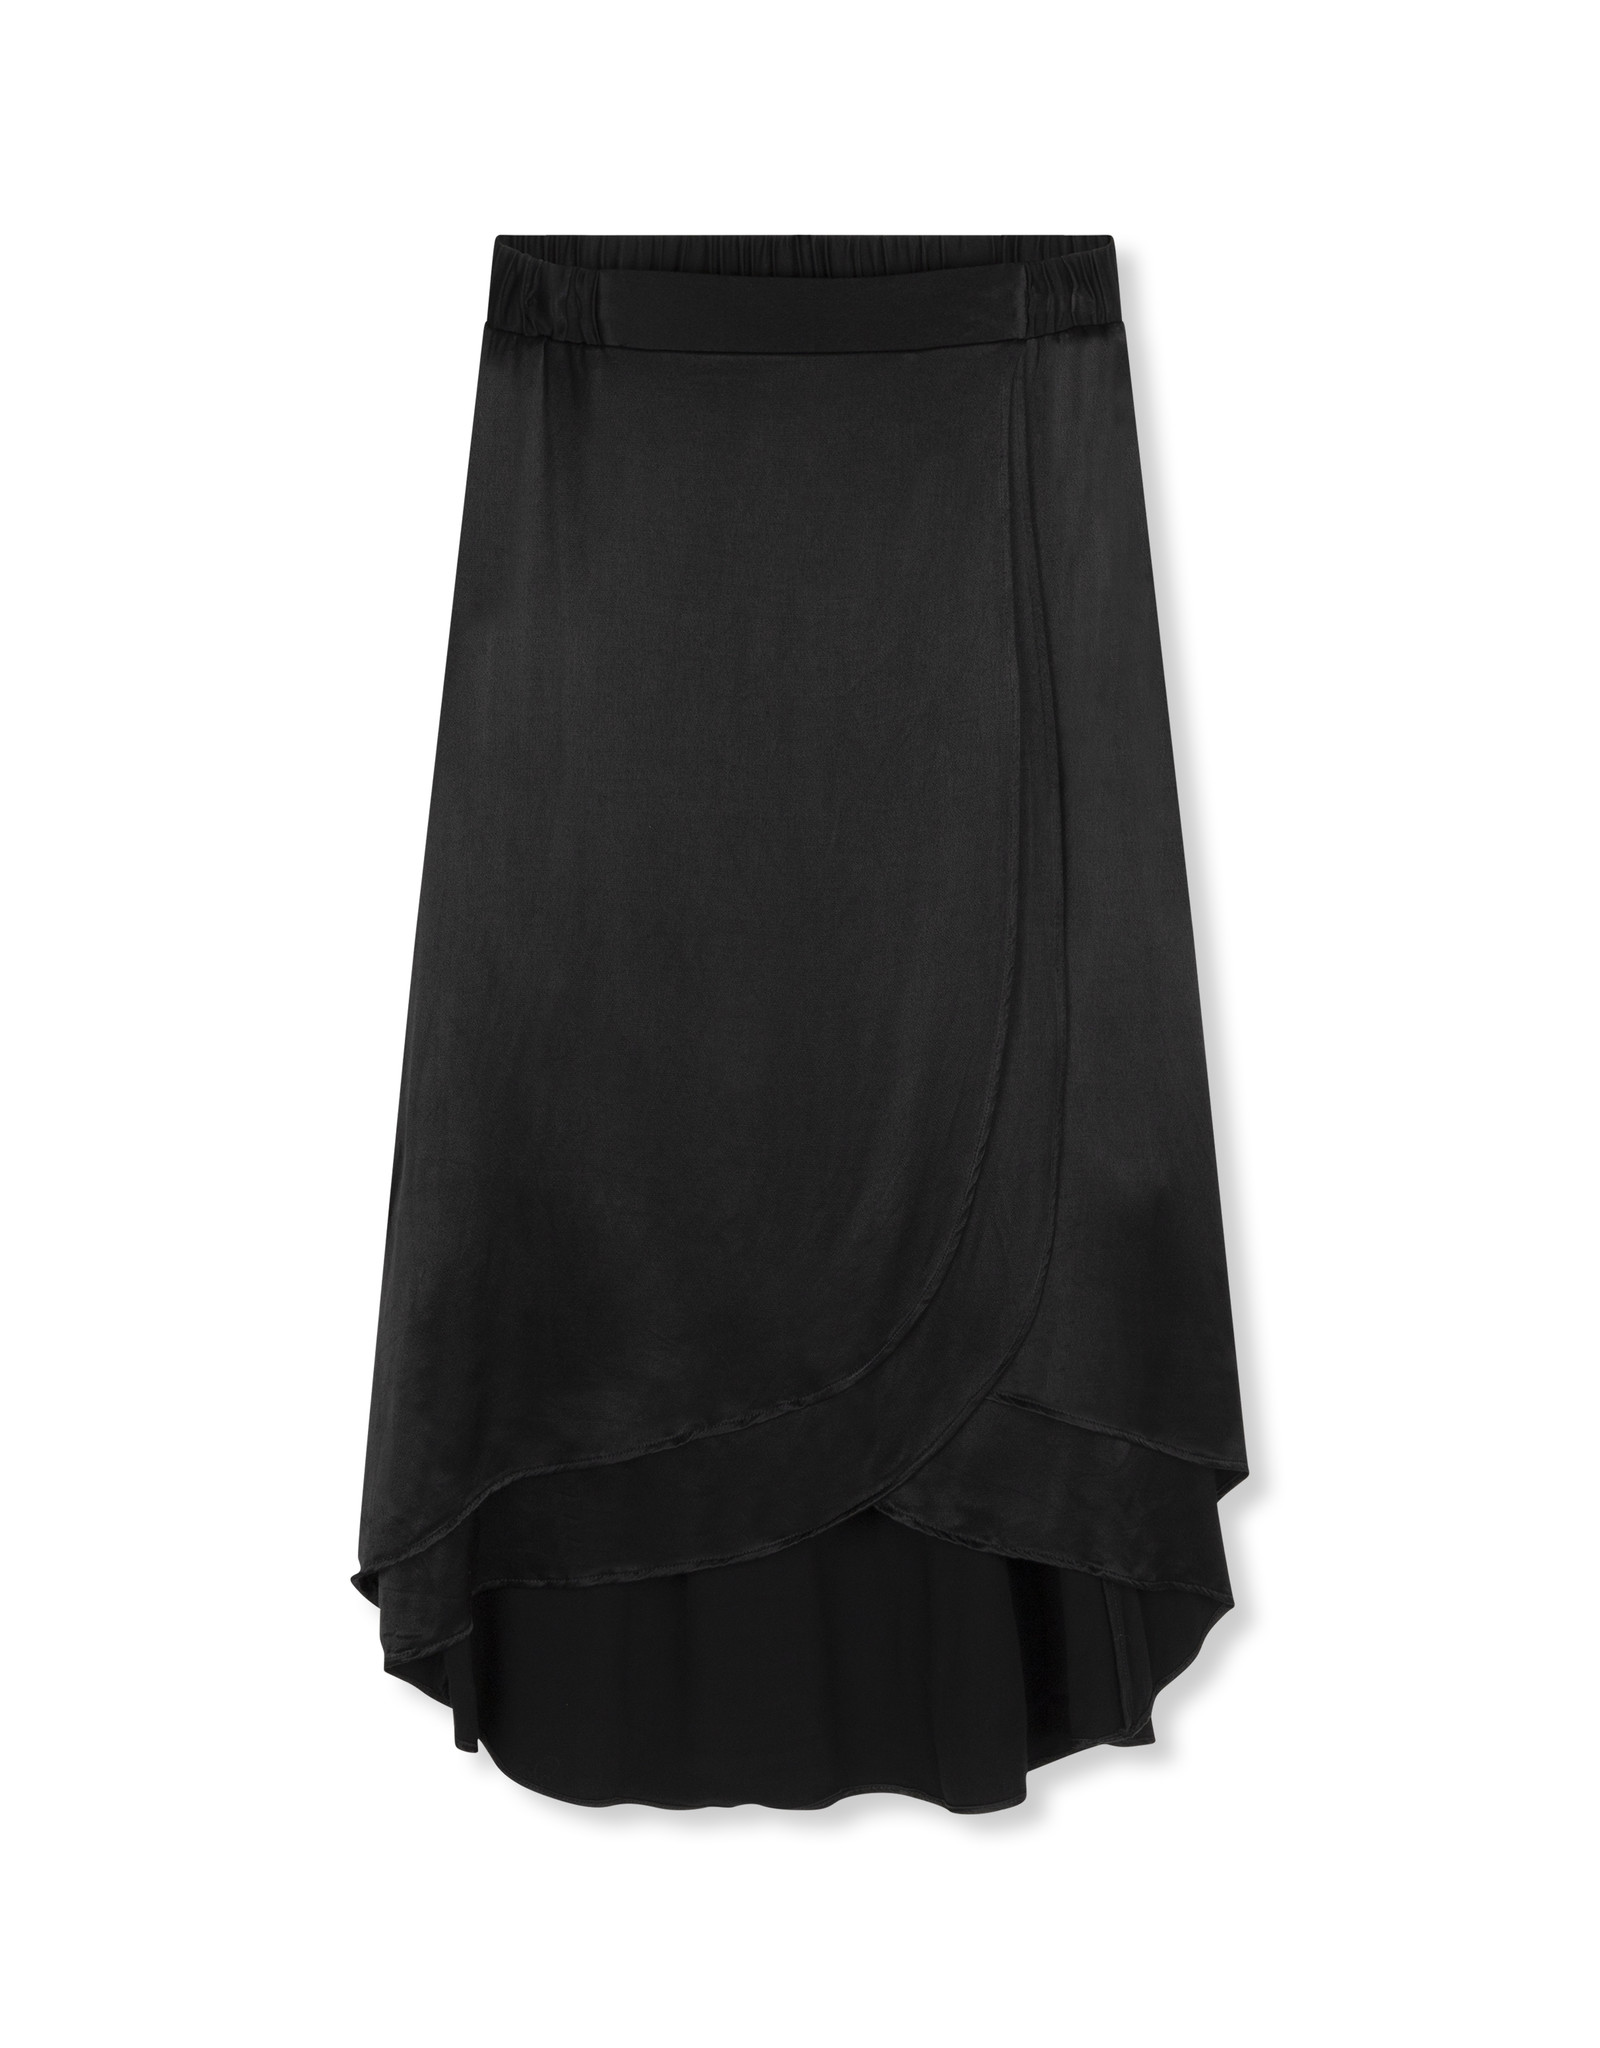 ALIX THE LABEL SKIRT SATIN